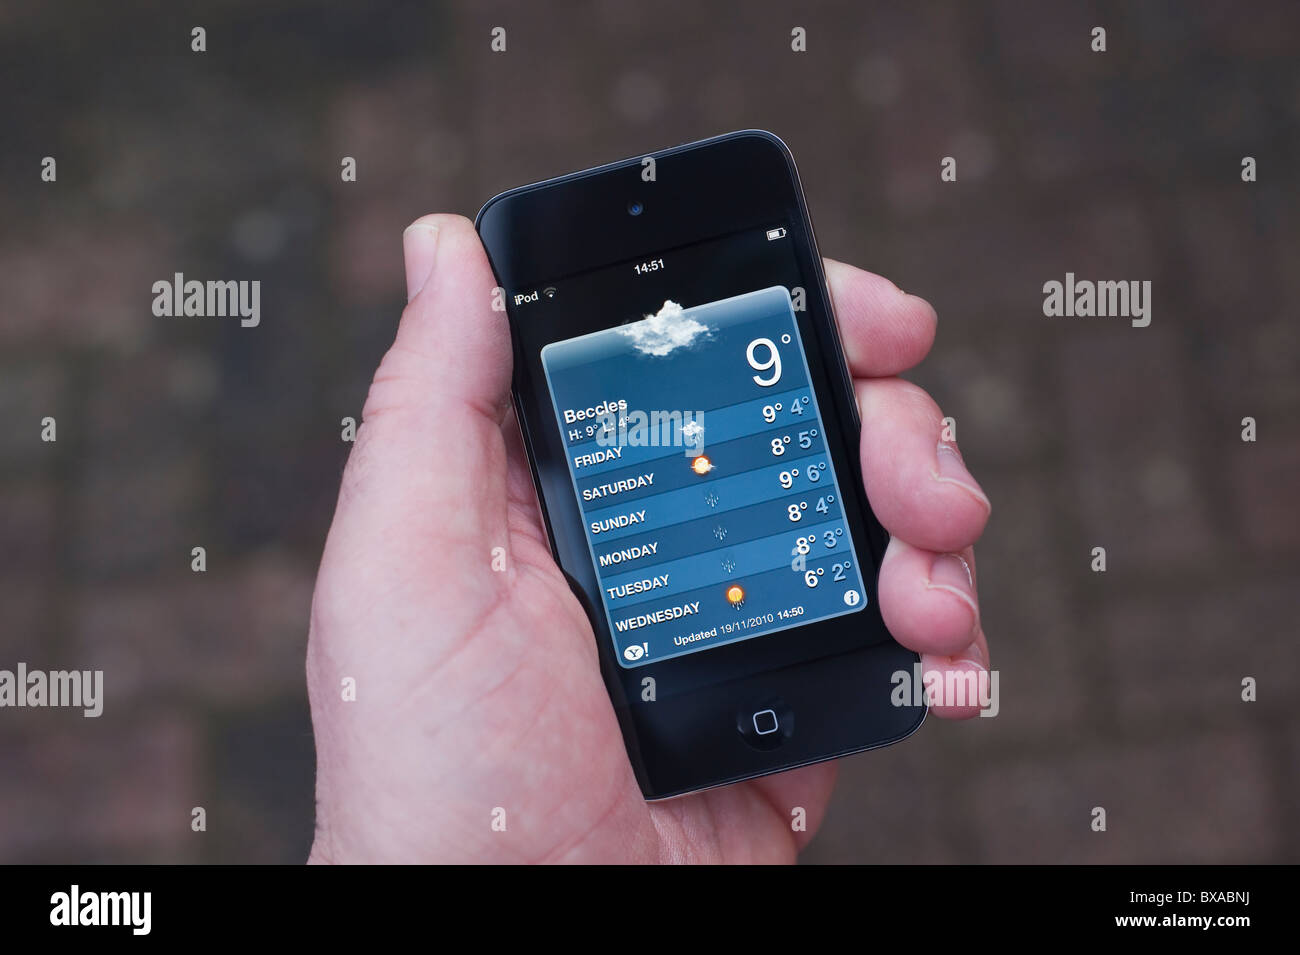 The new Apple Ipod touch 4th generation 4G 32gb media player with internet connection showing weather forecast - Stock Image